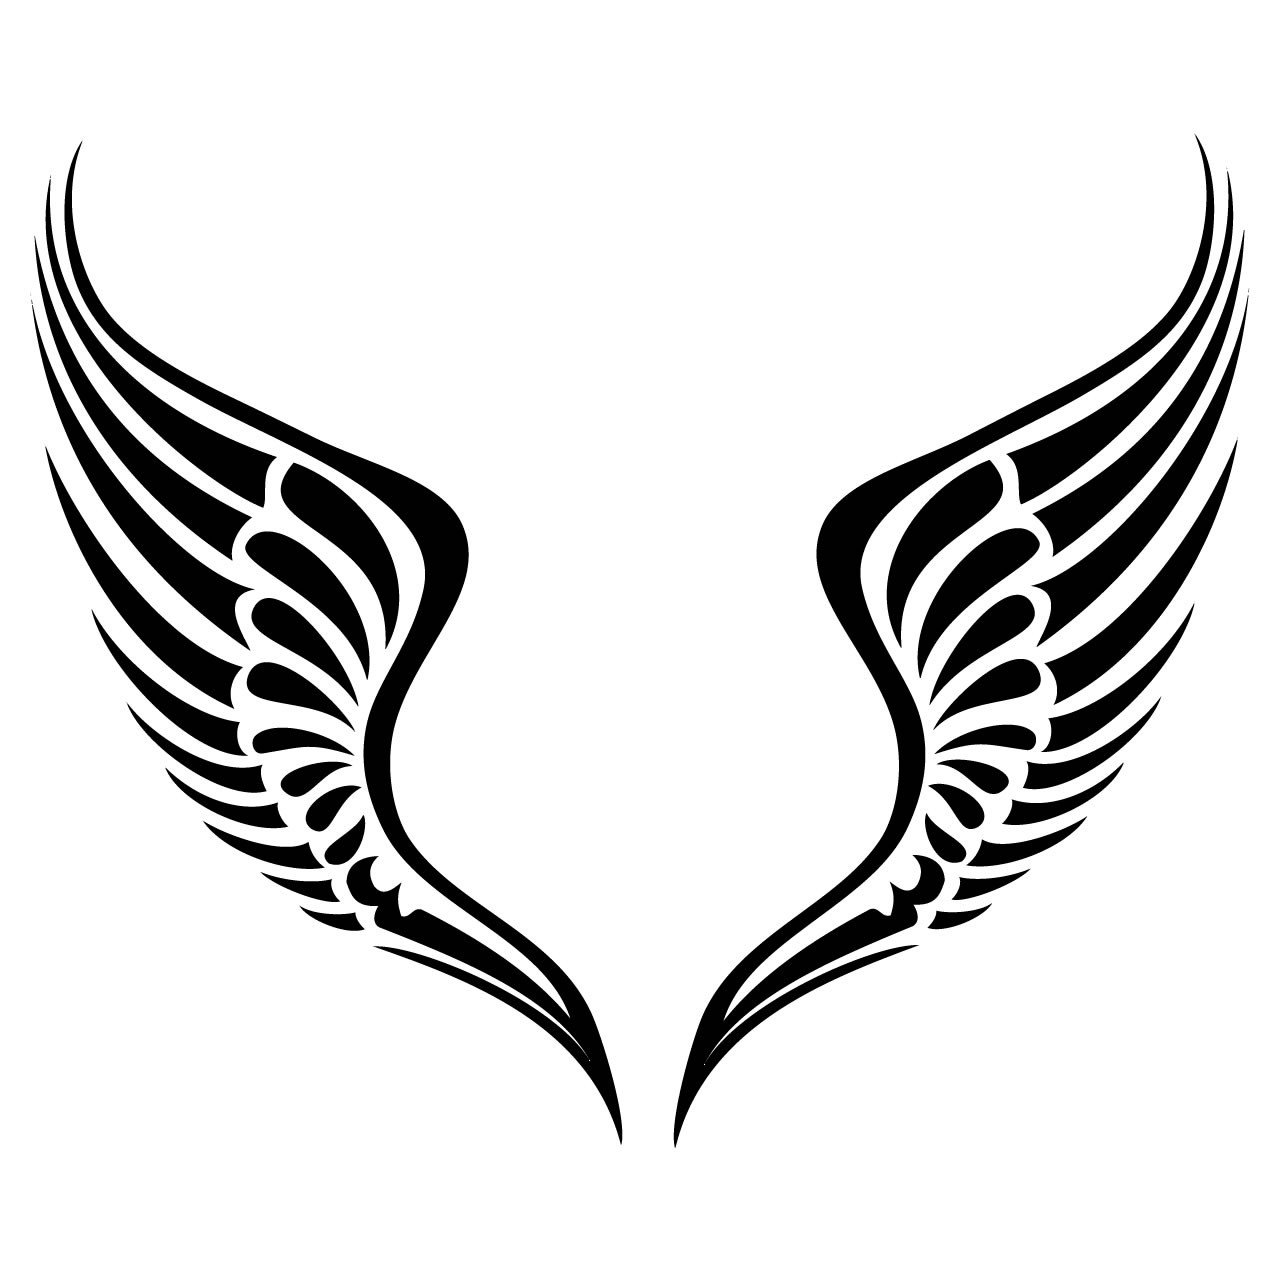 1280x1280 Simple Angel Wings Drawing Easy To Draw Angel Tattoos Simple Angel